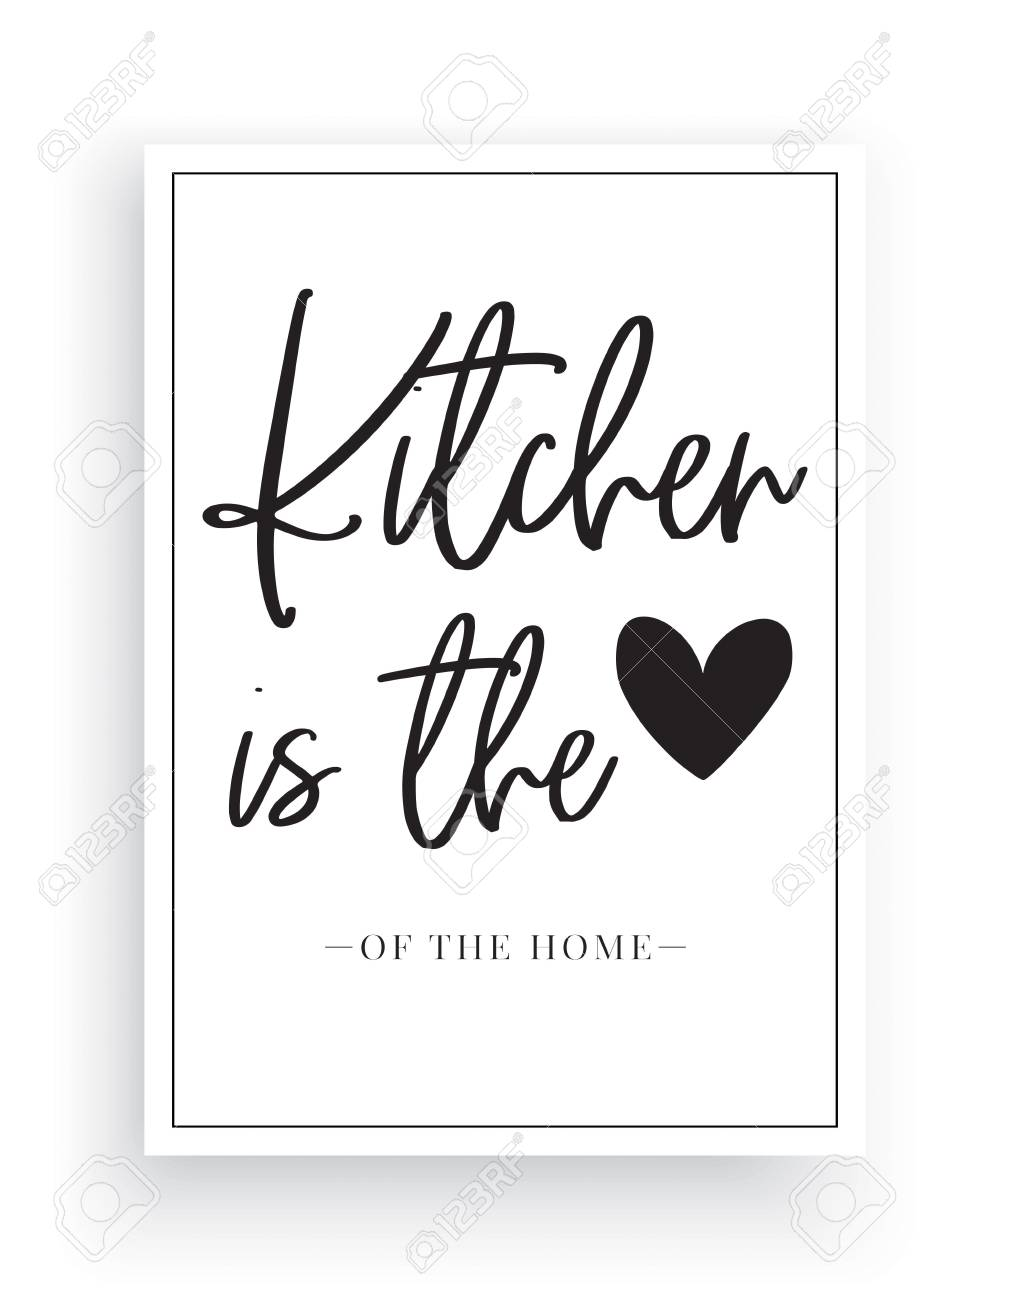 Minimalist Wording Design, Kitchen is the heart of the home,..